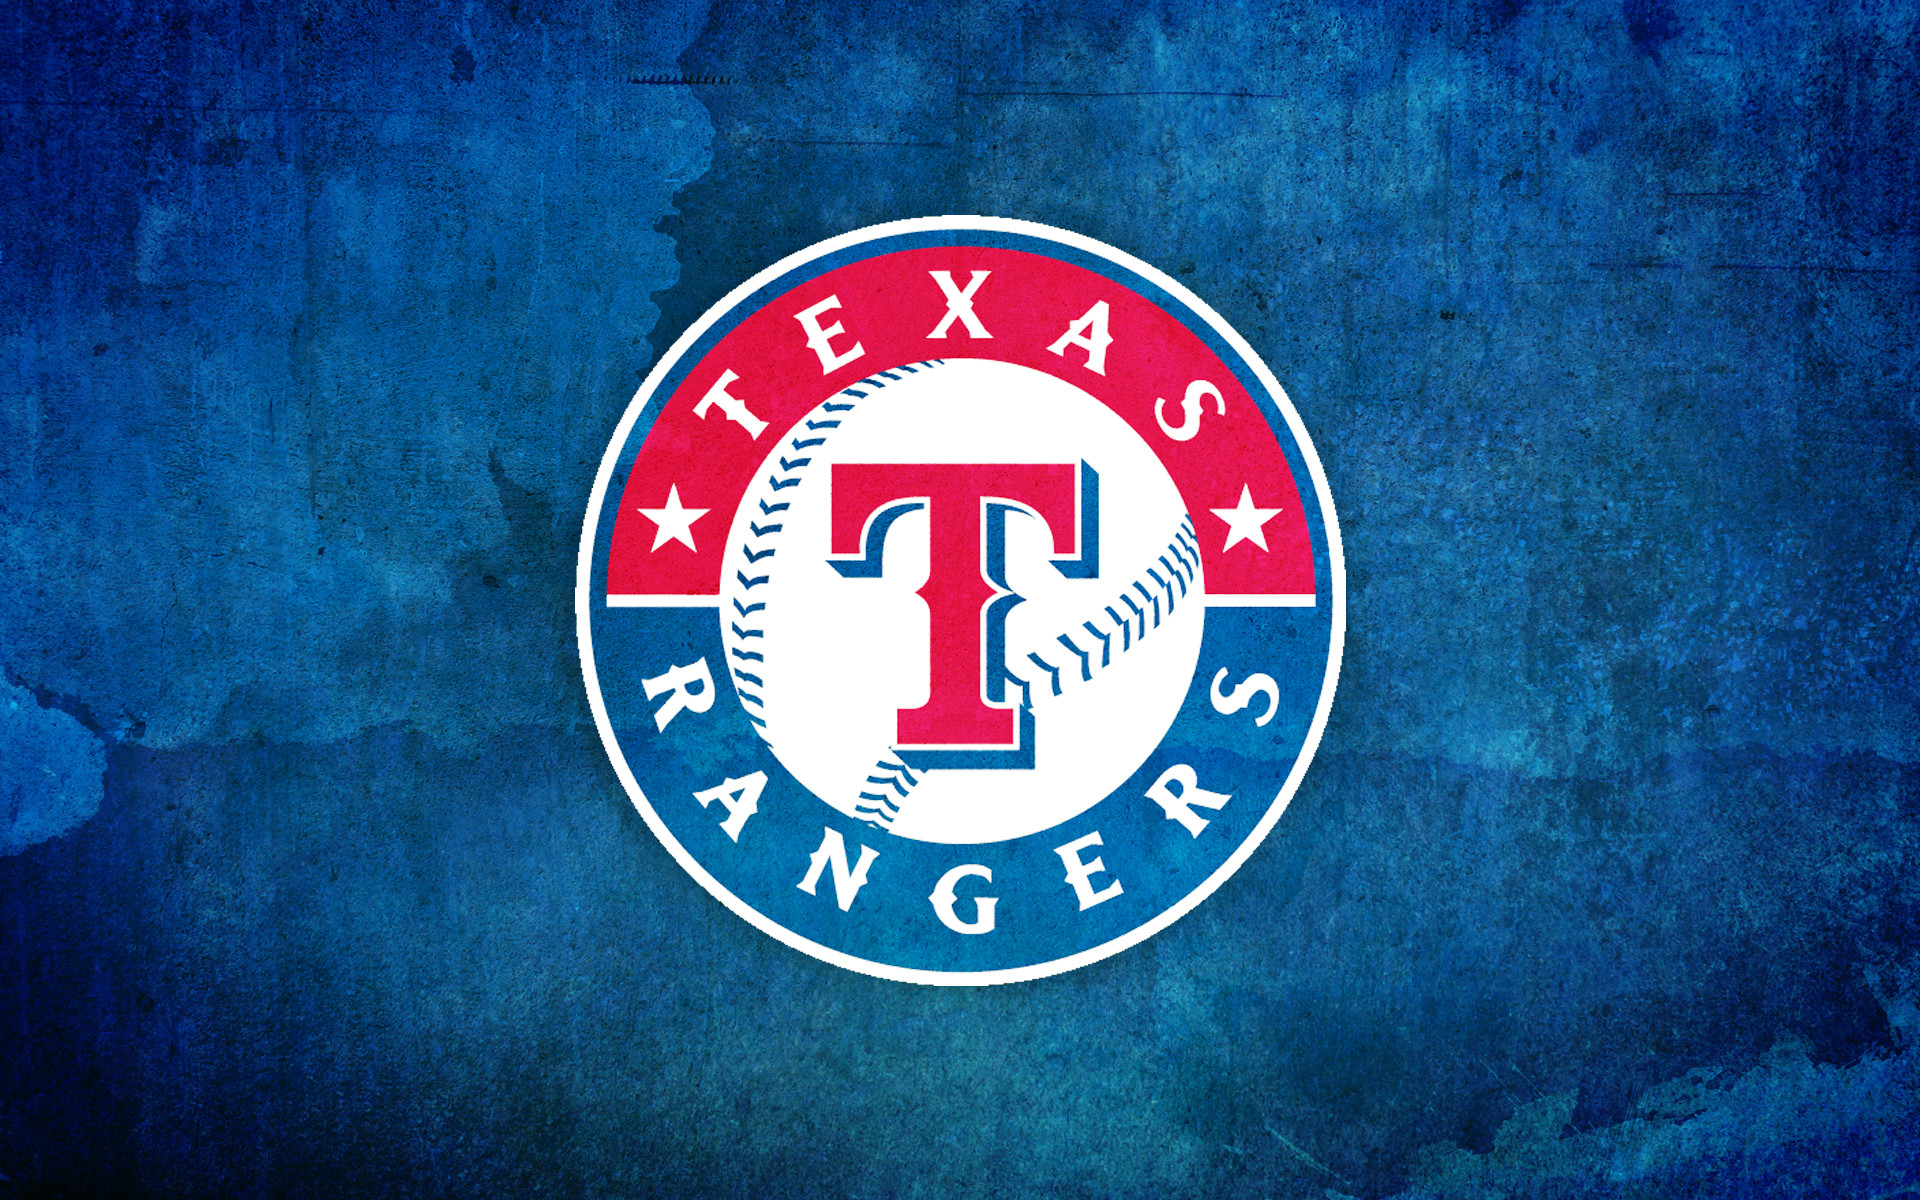 Texas Rangers Wallpapers and Screensavers